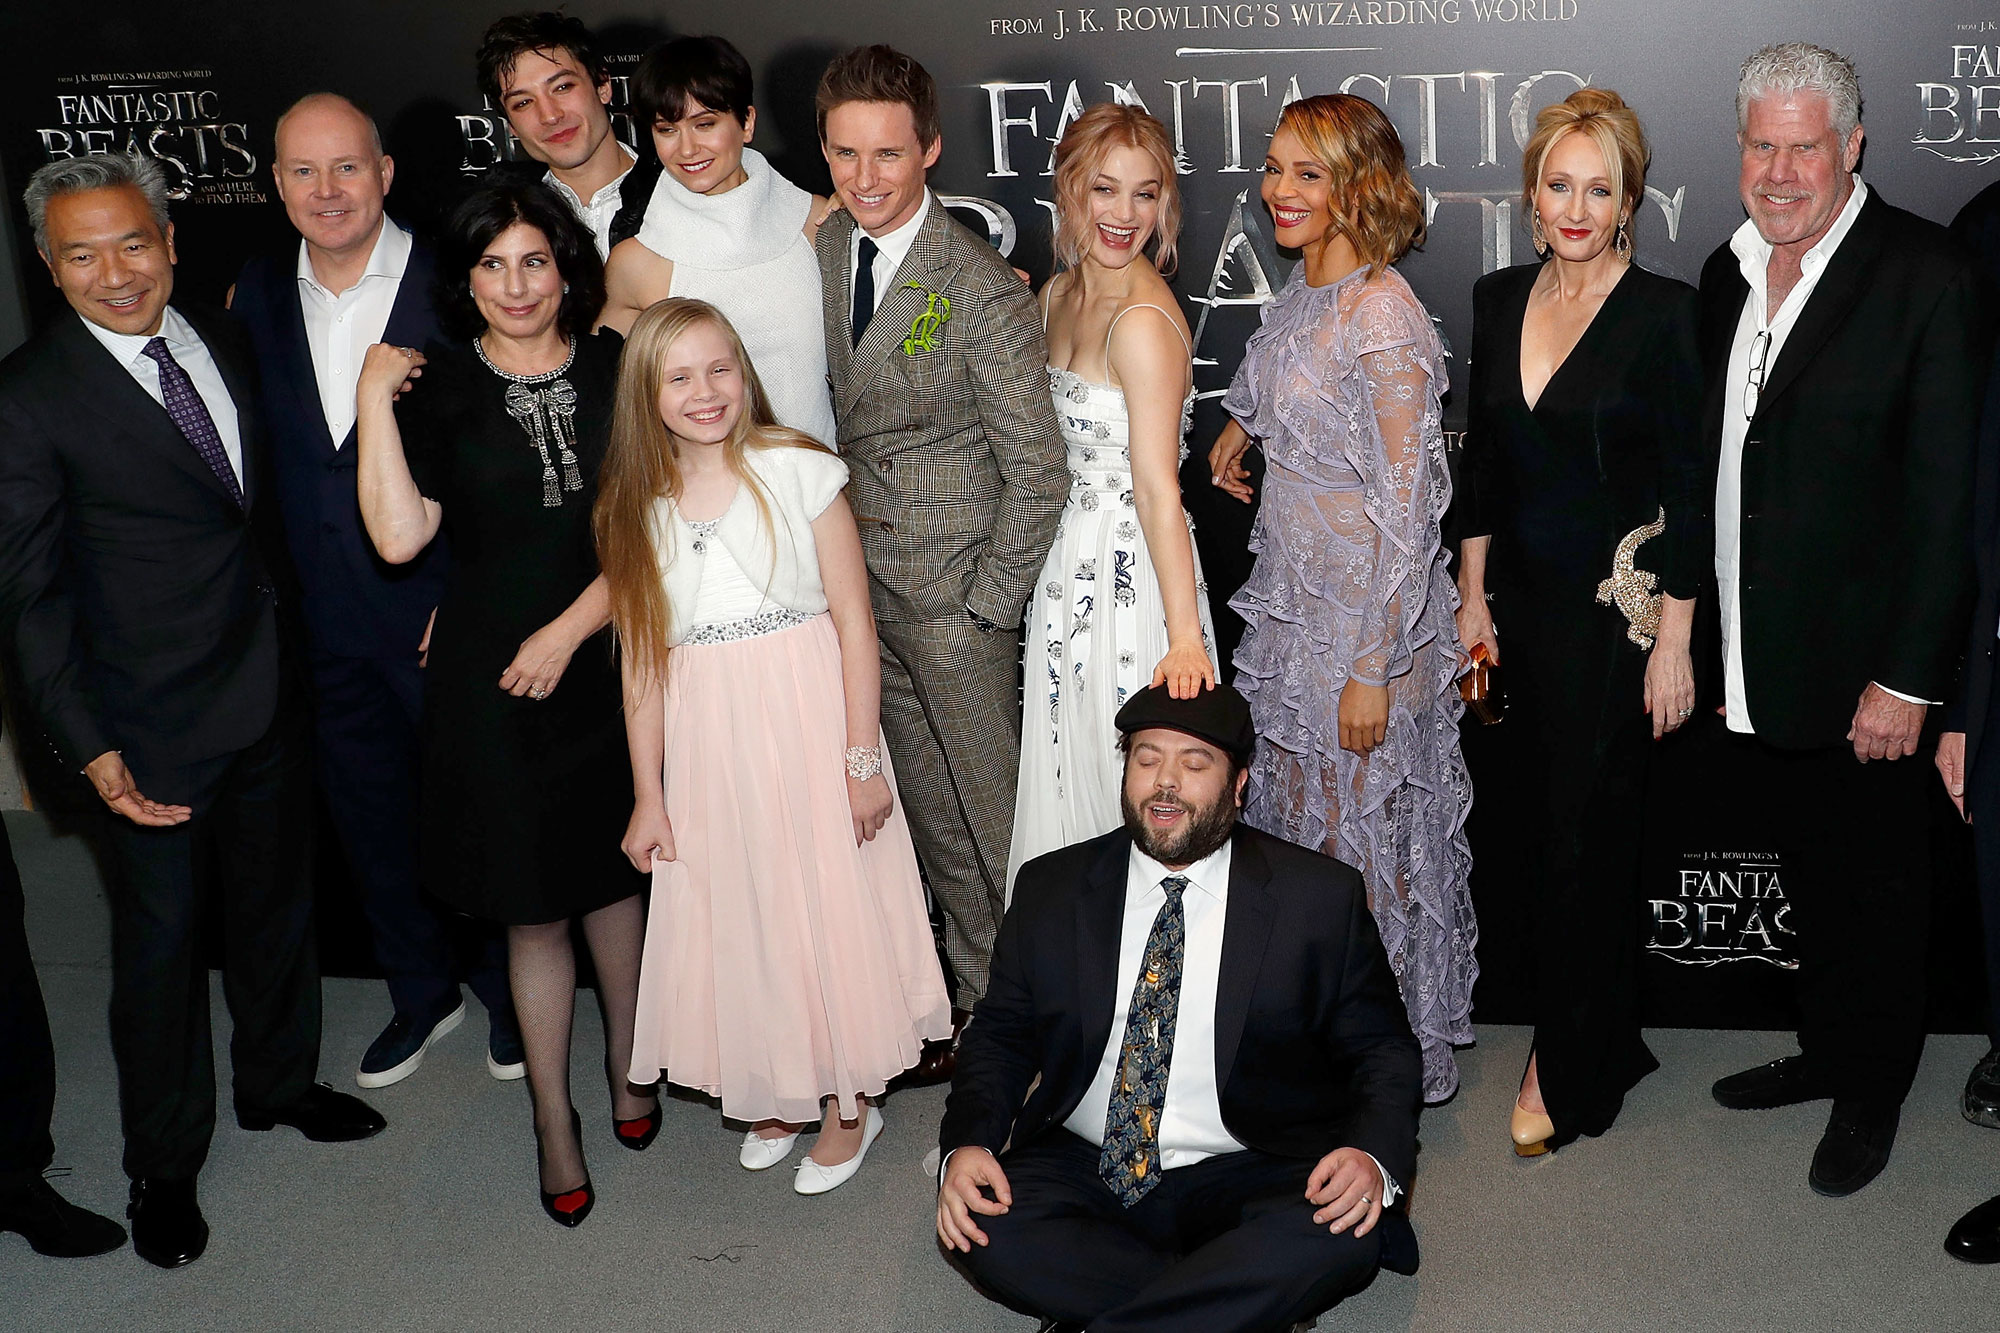 "NEW YORK, NY - NOVEMBER 10: (L-R) Kevin Tsujihara, David Yates, Sue Kroll, Ezra Miller, Katherine Waterston, Faith Wood-Blagrove, Eddie Redmayne, Alison Sudol, Dan Fogler, Carmen Ejogo, J. K. Rowling and Ron Pearlman attend the premiere of ""Fantastic Beasts and Where to Find Them"" at Alice Tully Hall, Lincoln Center on November 10, 2016 in New York City. (Photo by Taylor Hill/FilmMagic)"